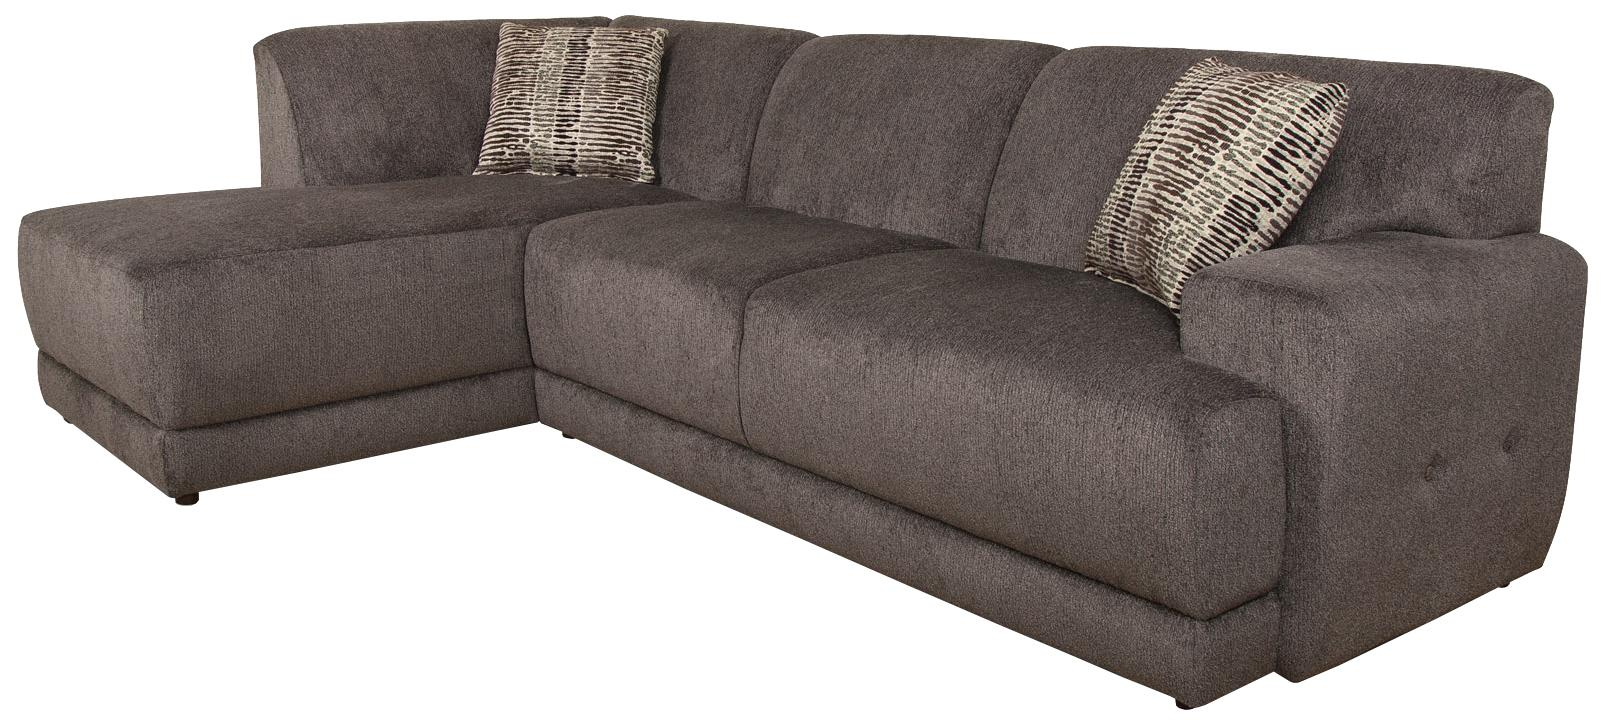 England Cole  Sectional Sofa with Left Facing Chaise - Item Number: 2880-06+23